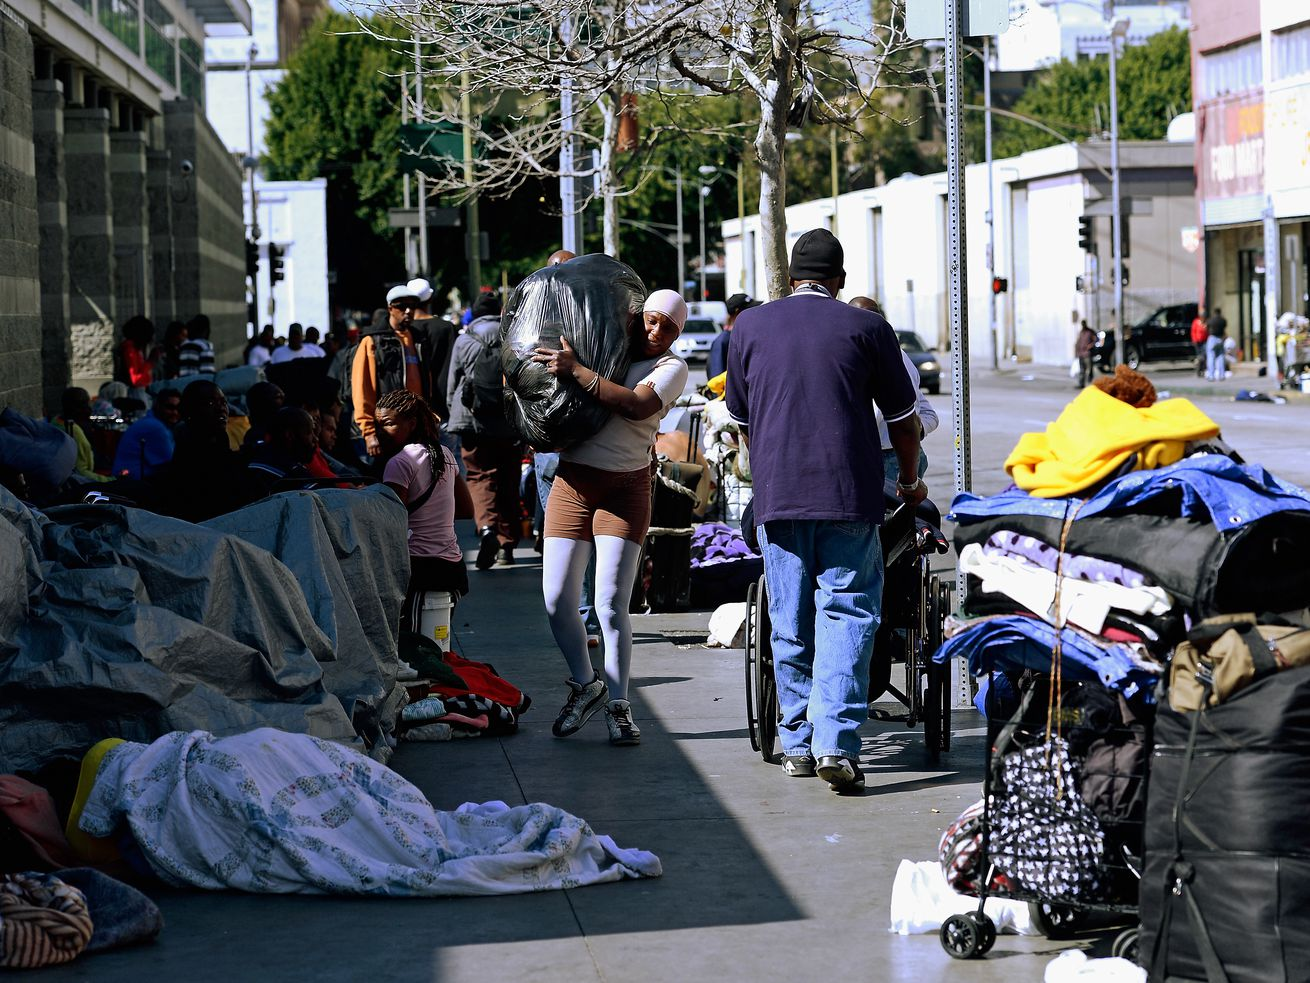 More than 2,000 people live without shelter in Downtown.